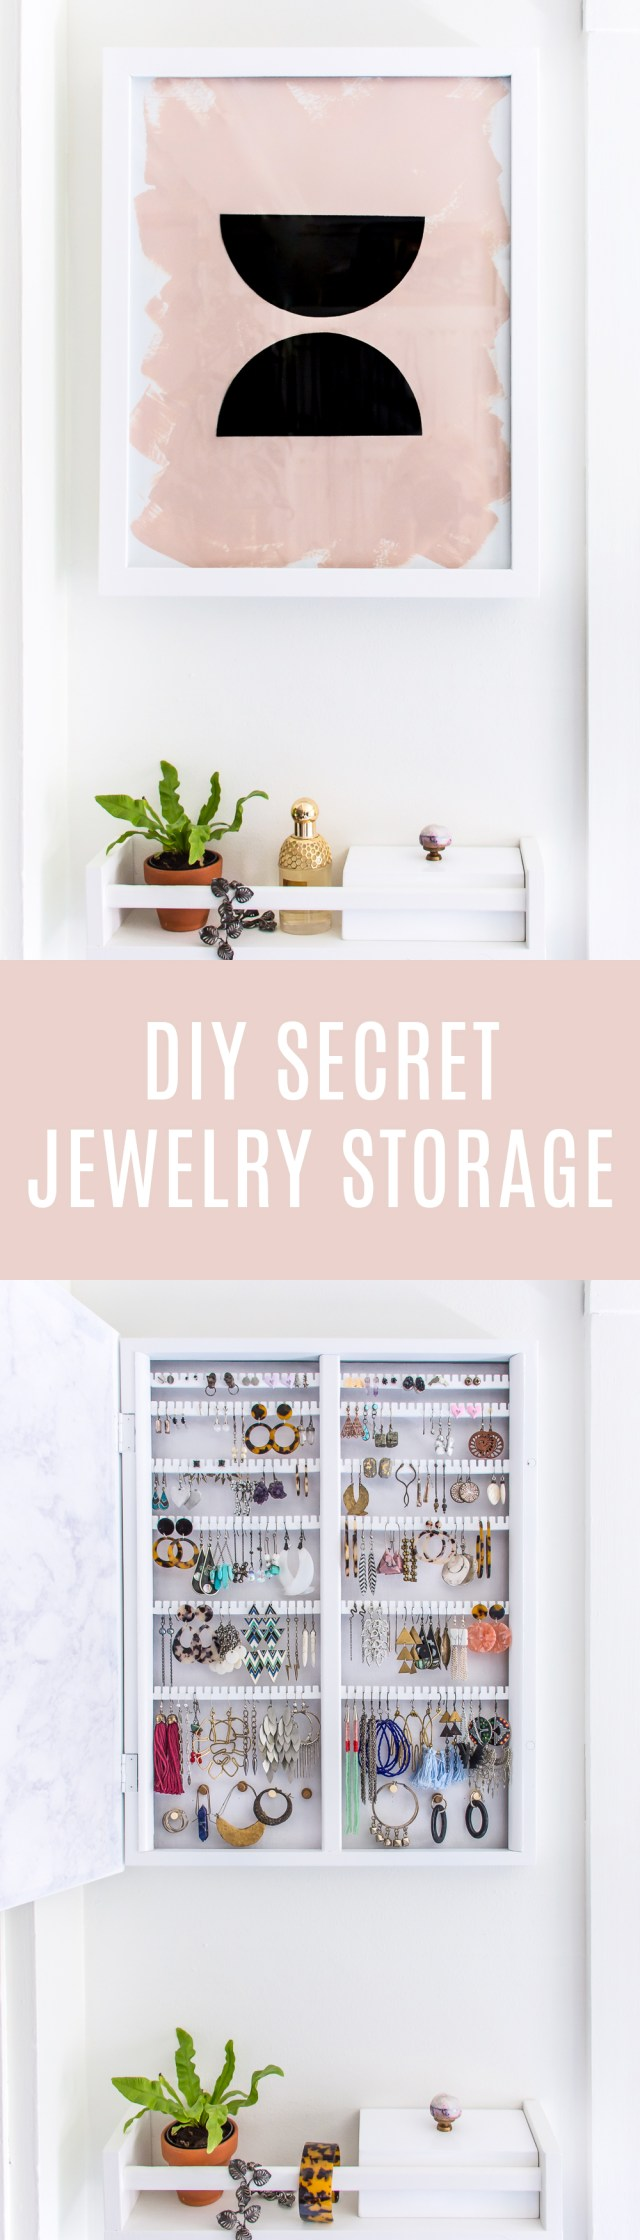 Need to store jewelry, but don't want it all out in the open? Build your own secret jewelry storage hidden behind art! #DIY #decor #homedeor #art